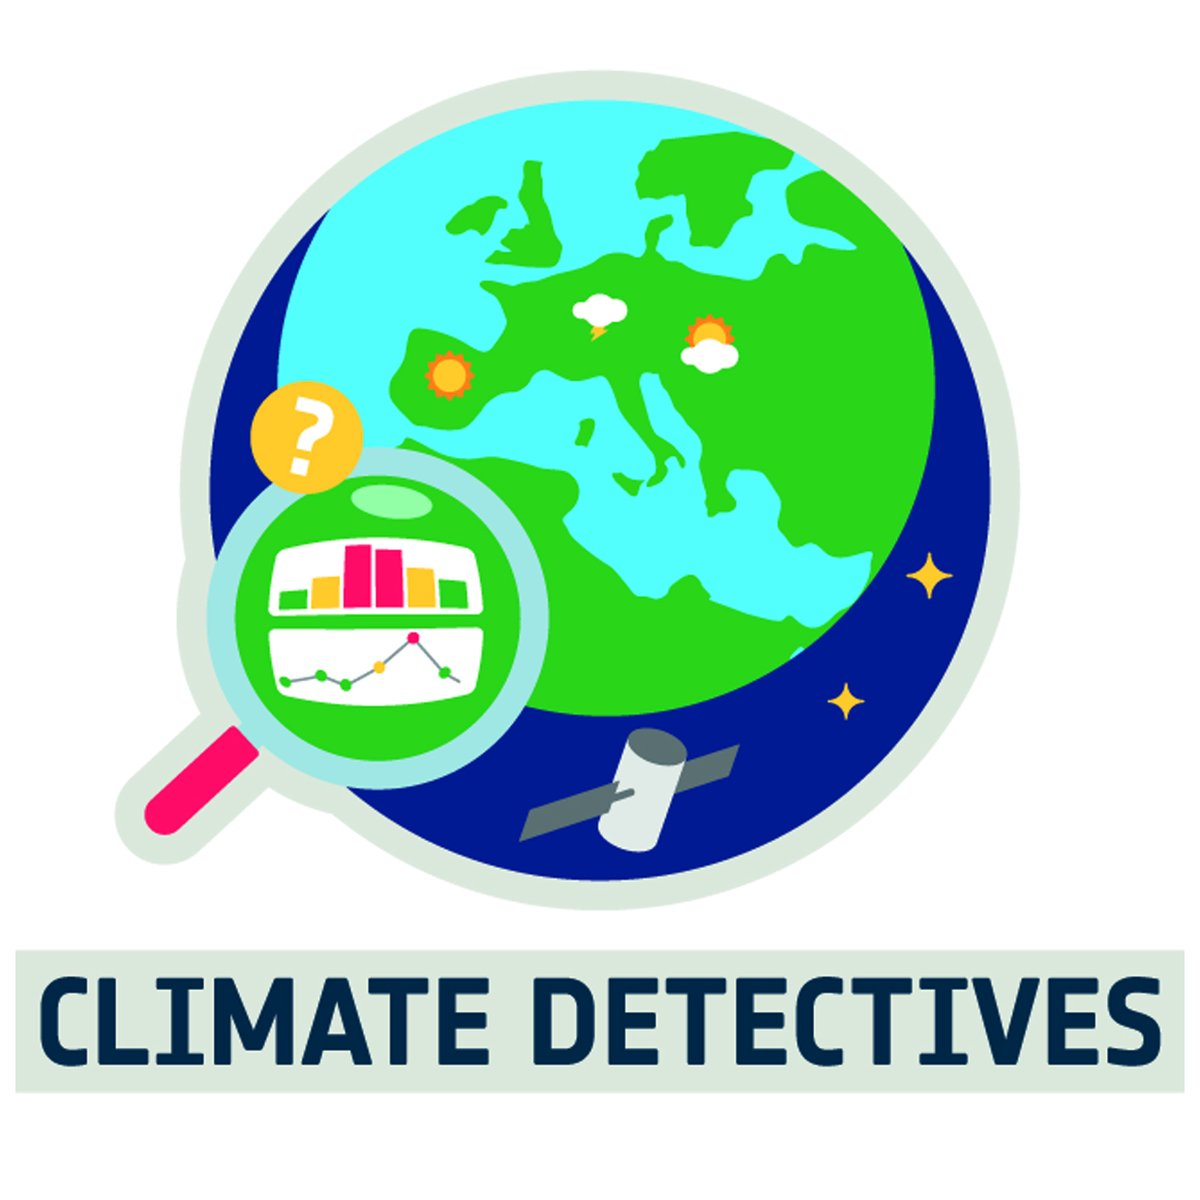 Calling all #ClimateDetectives, now's your chance to help protect #Earth! The 3rd edition is now open for submissions. Investigate a local #climate problem using satellite data or your own ground measurements and propose a way to mitigate the problem 🌍🔍 https://t.co/K5O47NlPcy https://t.co/aheW0JK8uN